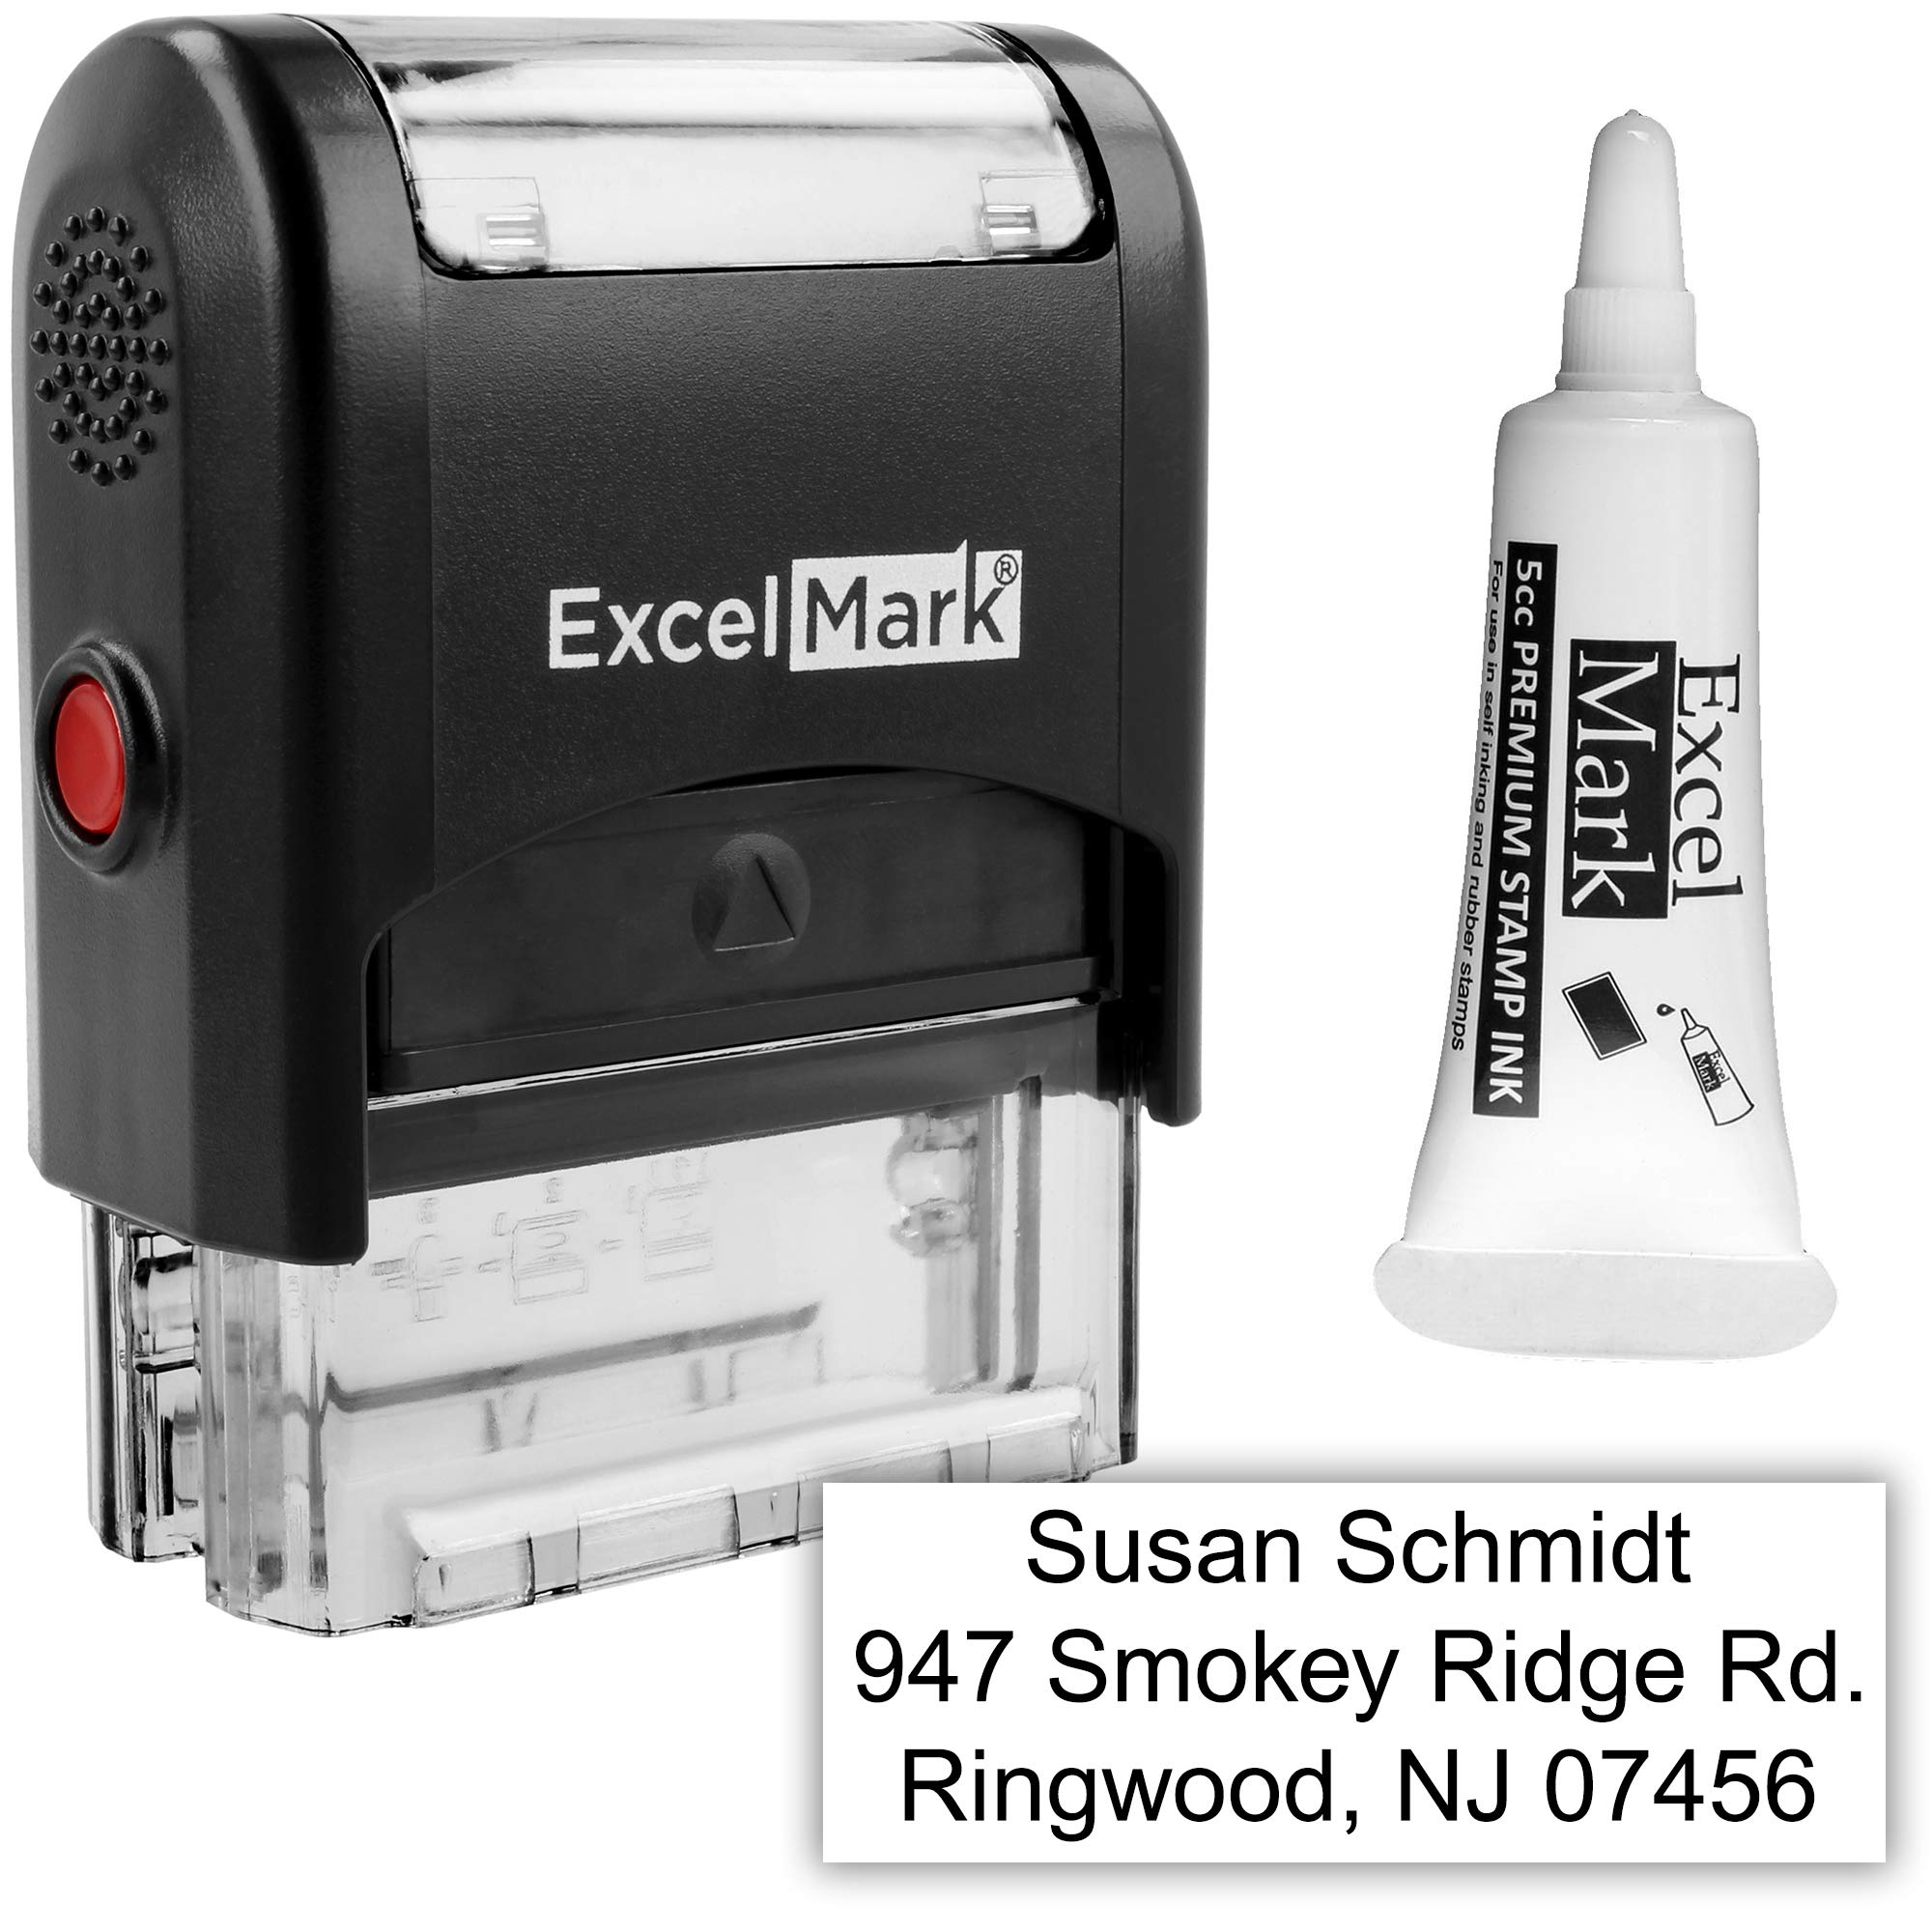 Custom Self Inking Rubber Stamp - 3 Lines - with Ink Bottle 5cc (A1539) by ExcelMark